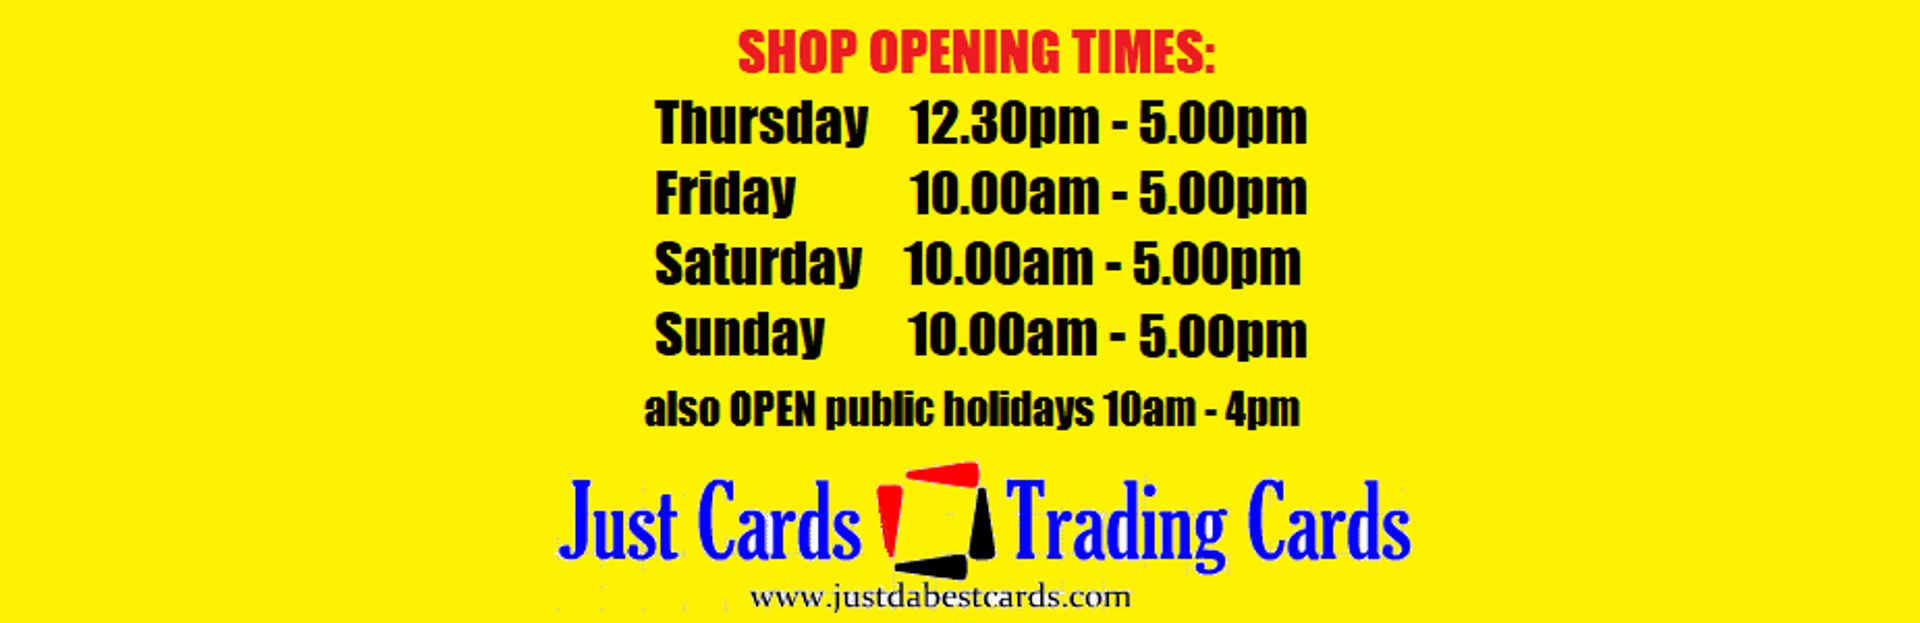 Just Cards Shop Open Times